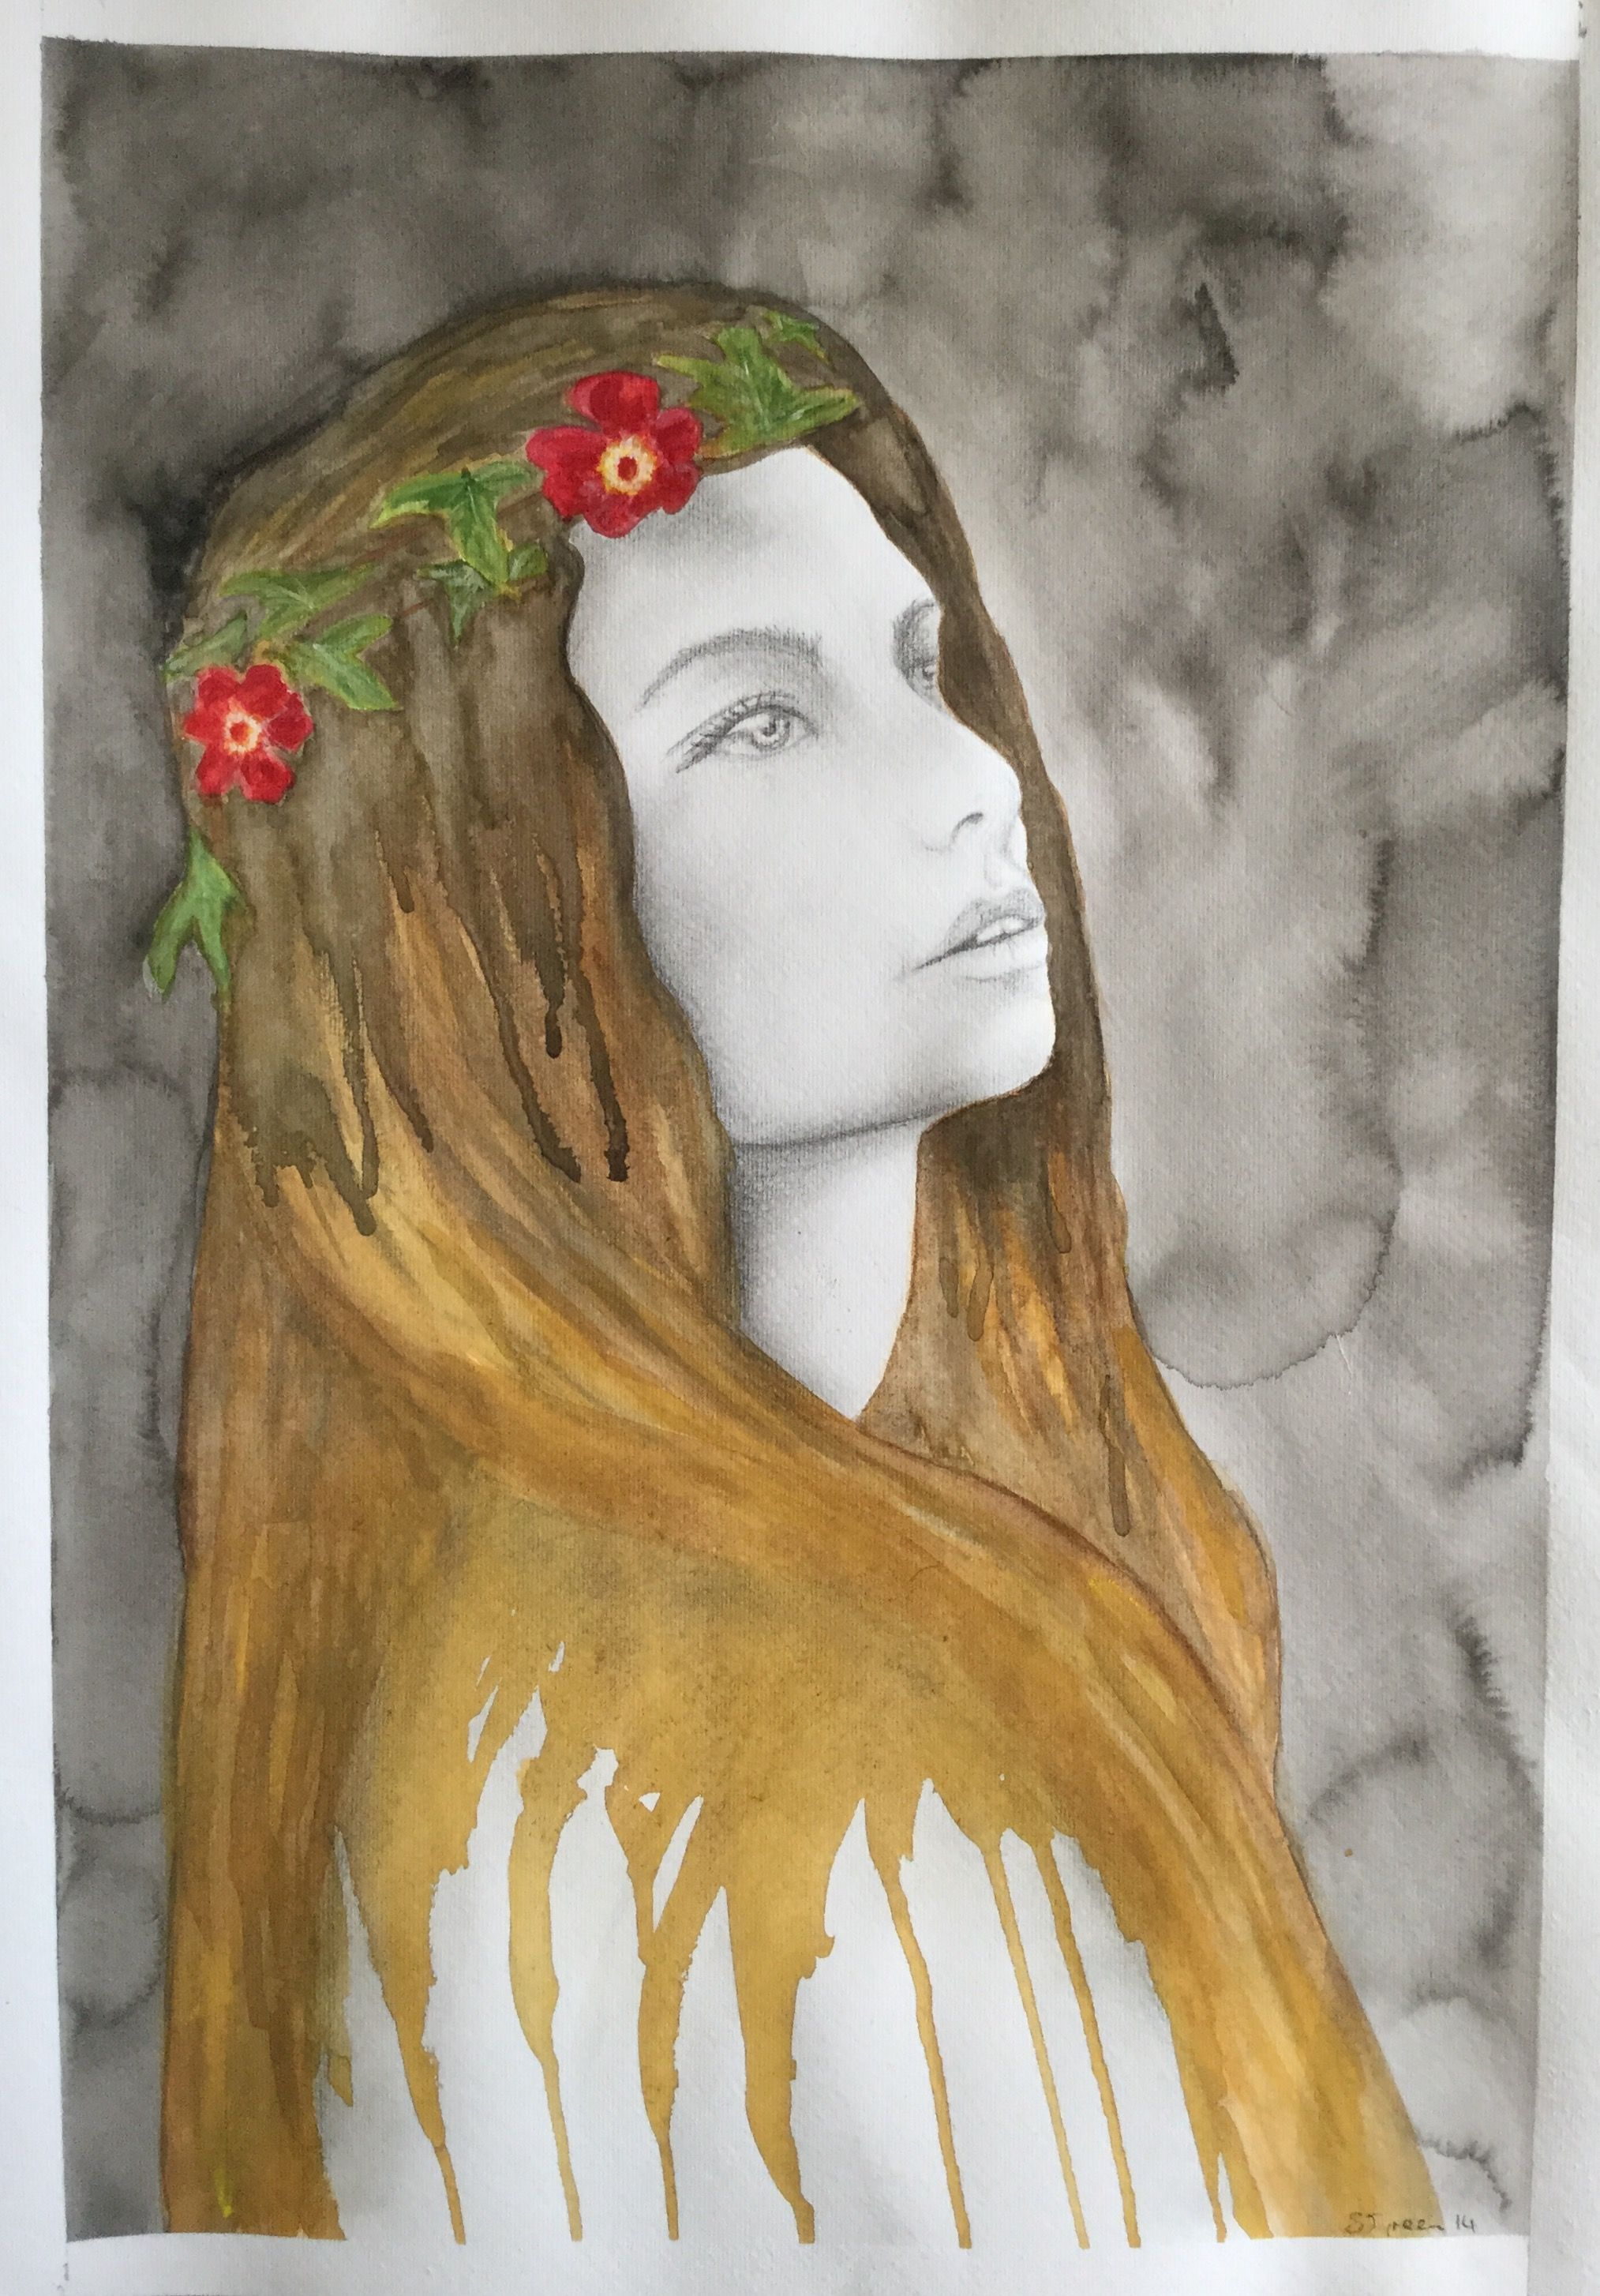 Watercolour And Pencil Sketch Rl With Flower Garland